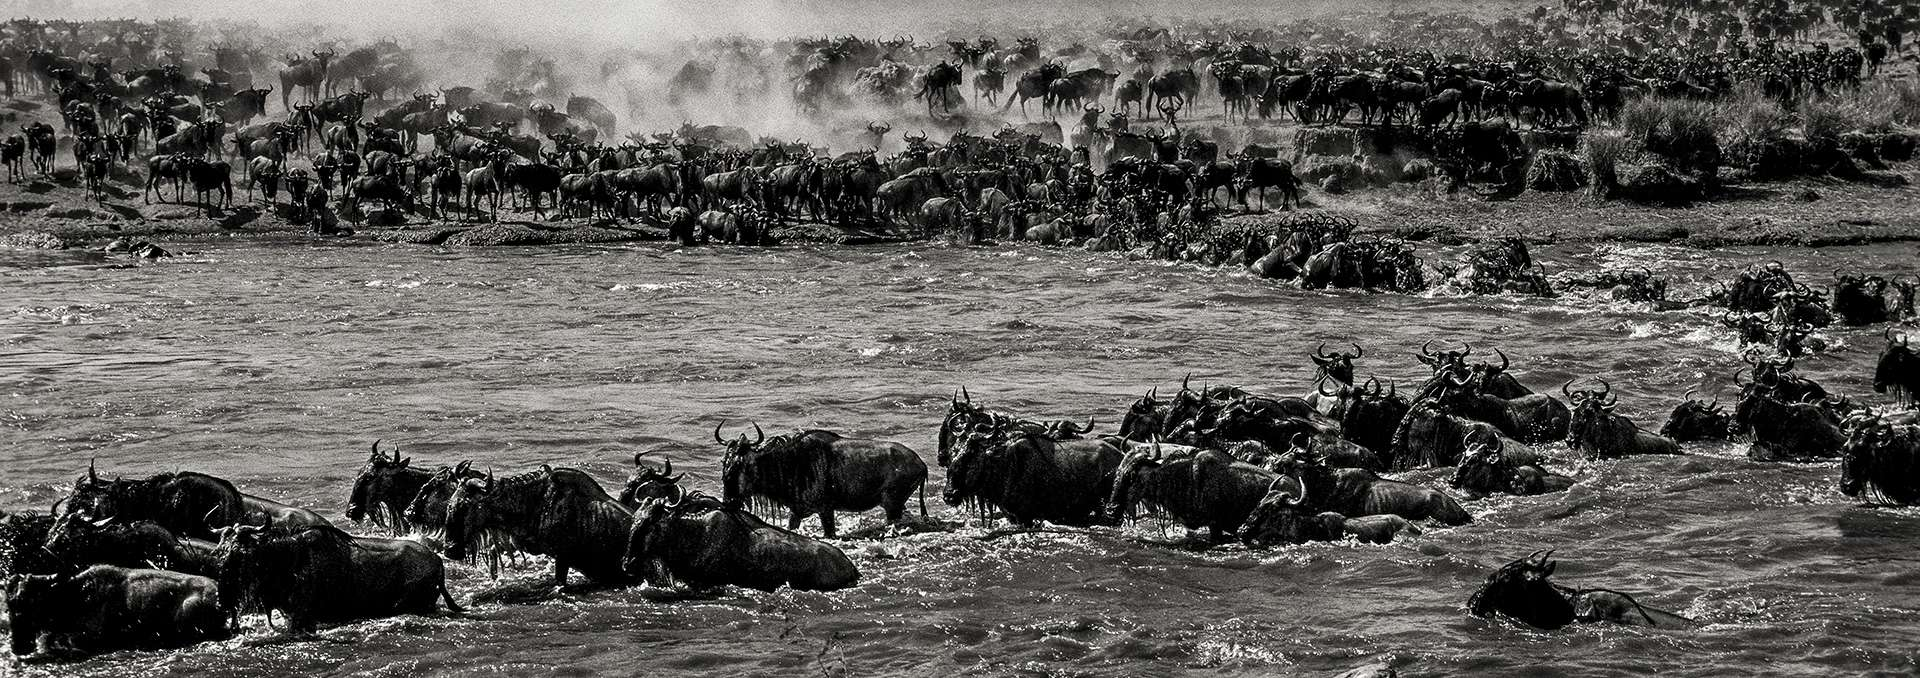 Gilles Martin's photograph : wildebeest from Kenya, Struggle for life